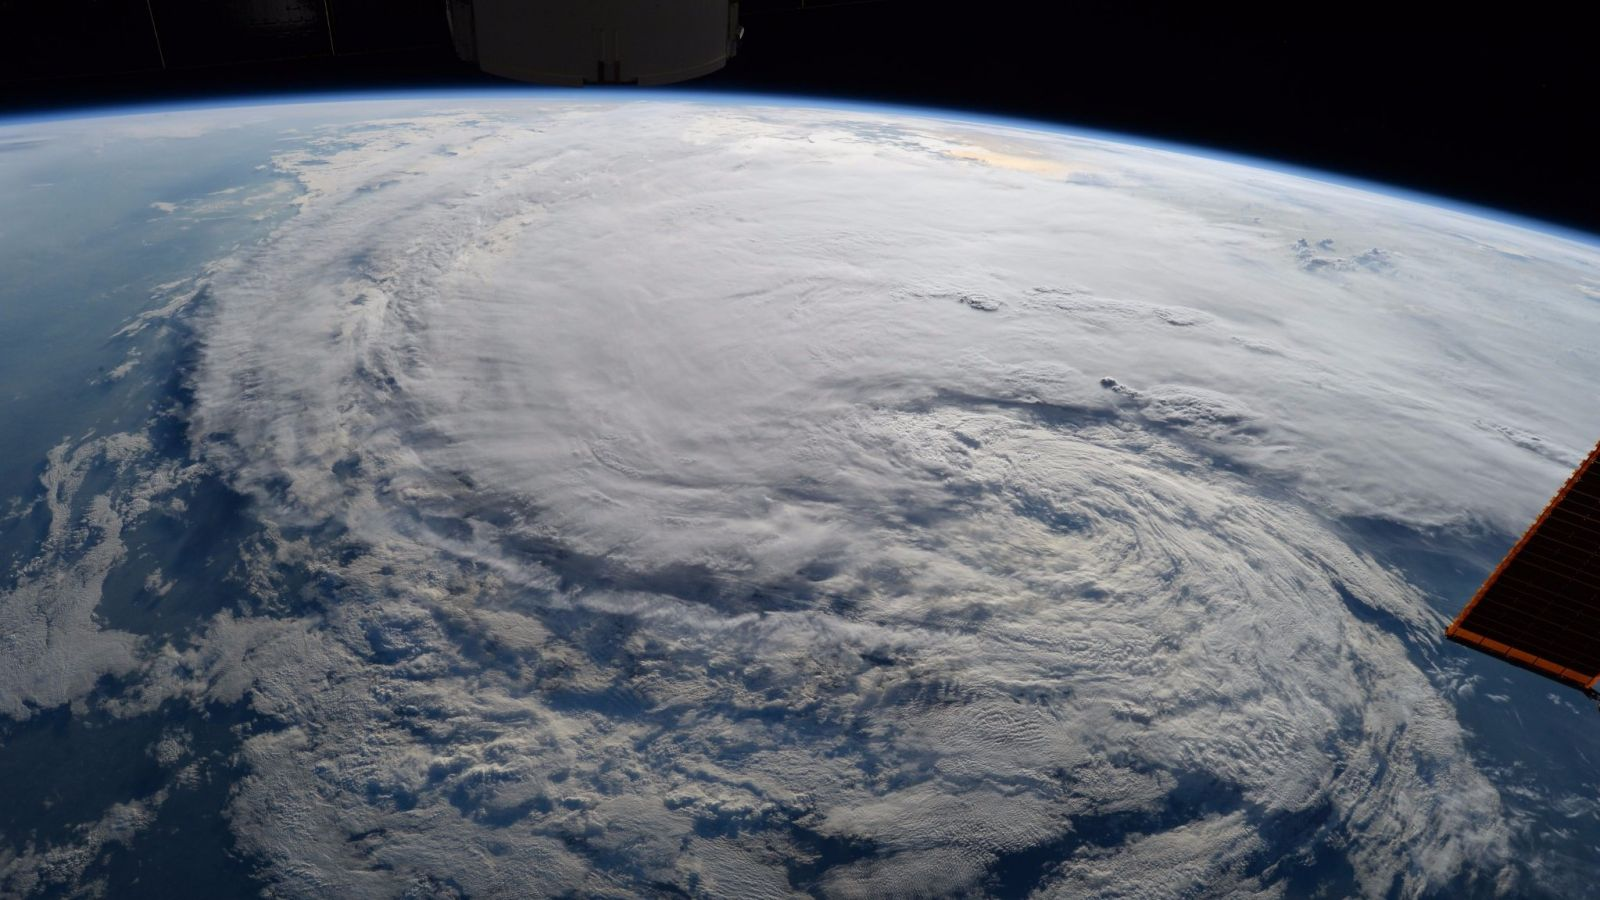 Tropical Storm Harvey as seen by the crew of the International Space Station on Aug. 29, 2017. Photo Credit: Randy Bresnik / NASA